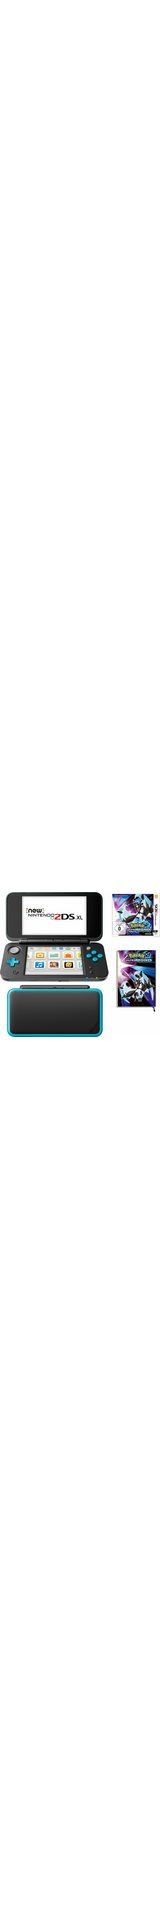 New Nintendo 2DS XL + Pokemon Ultramond + Notizbuch